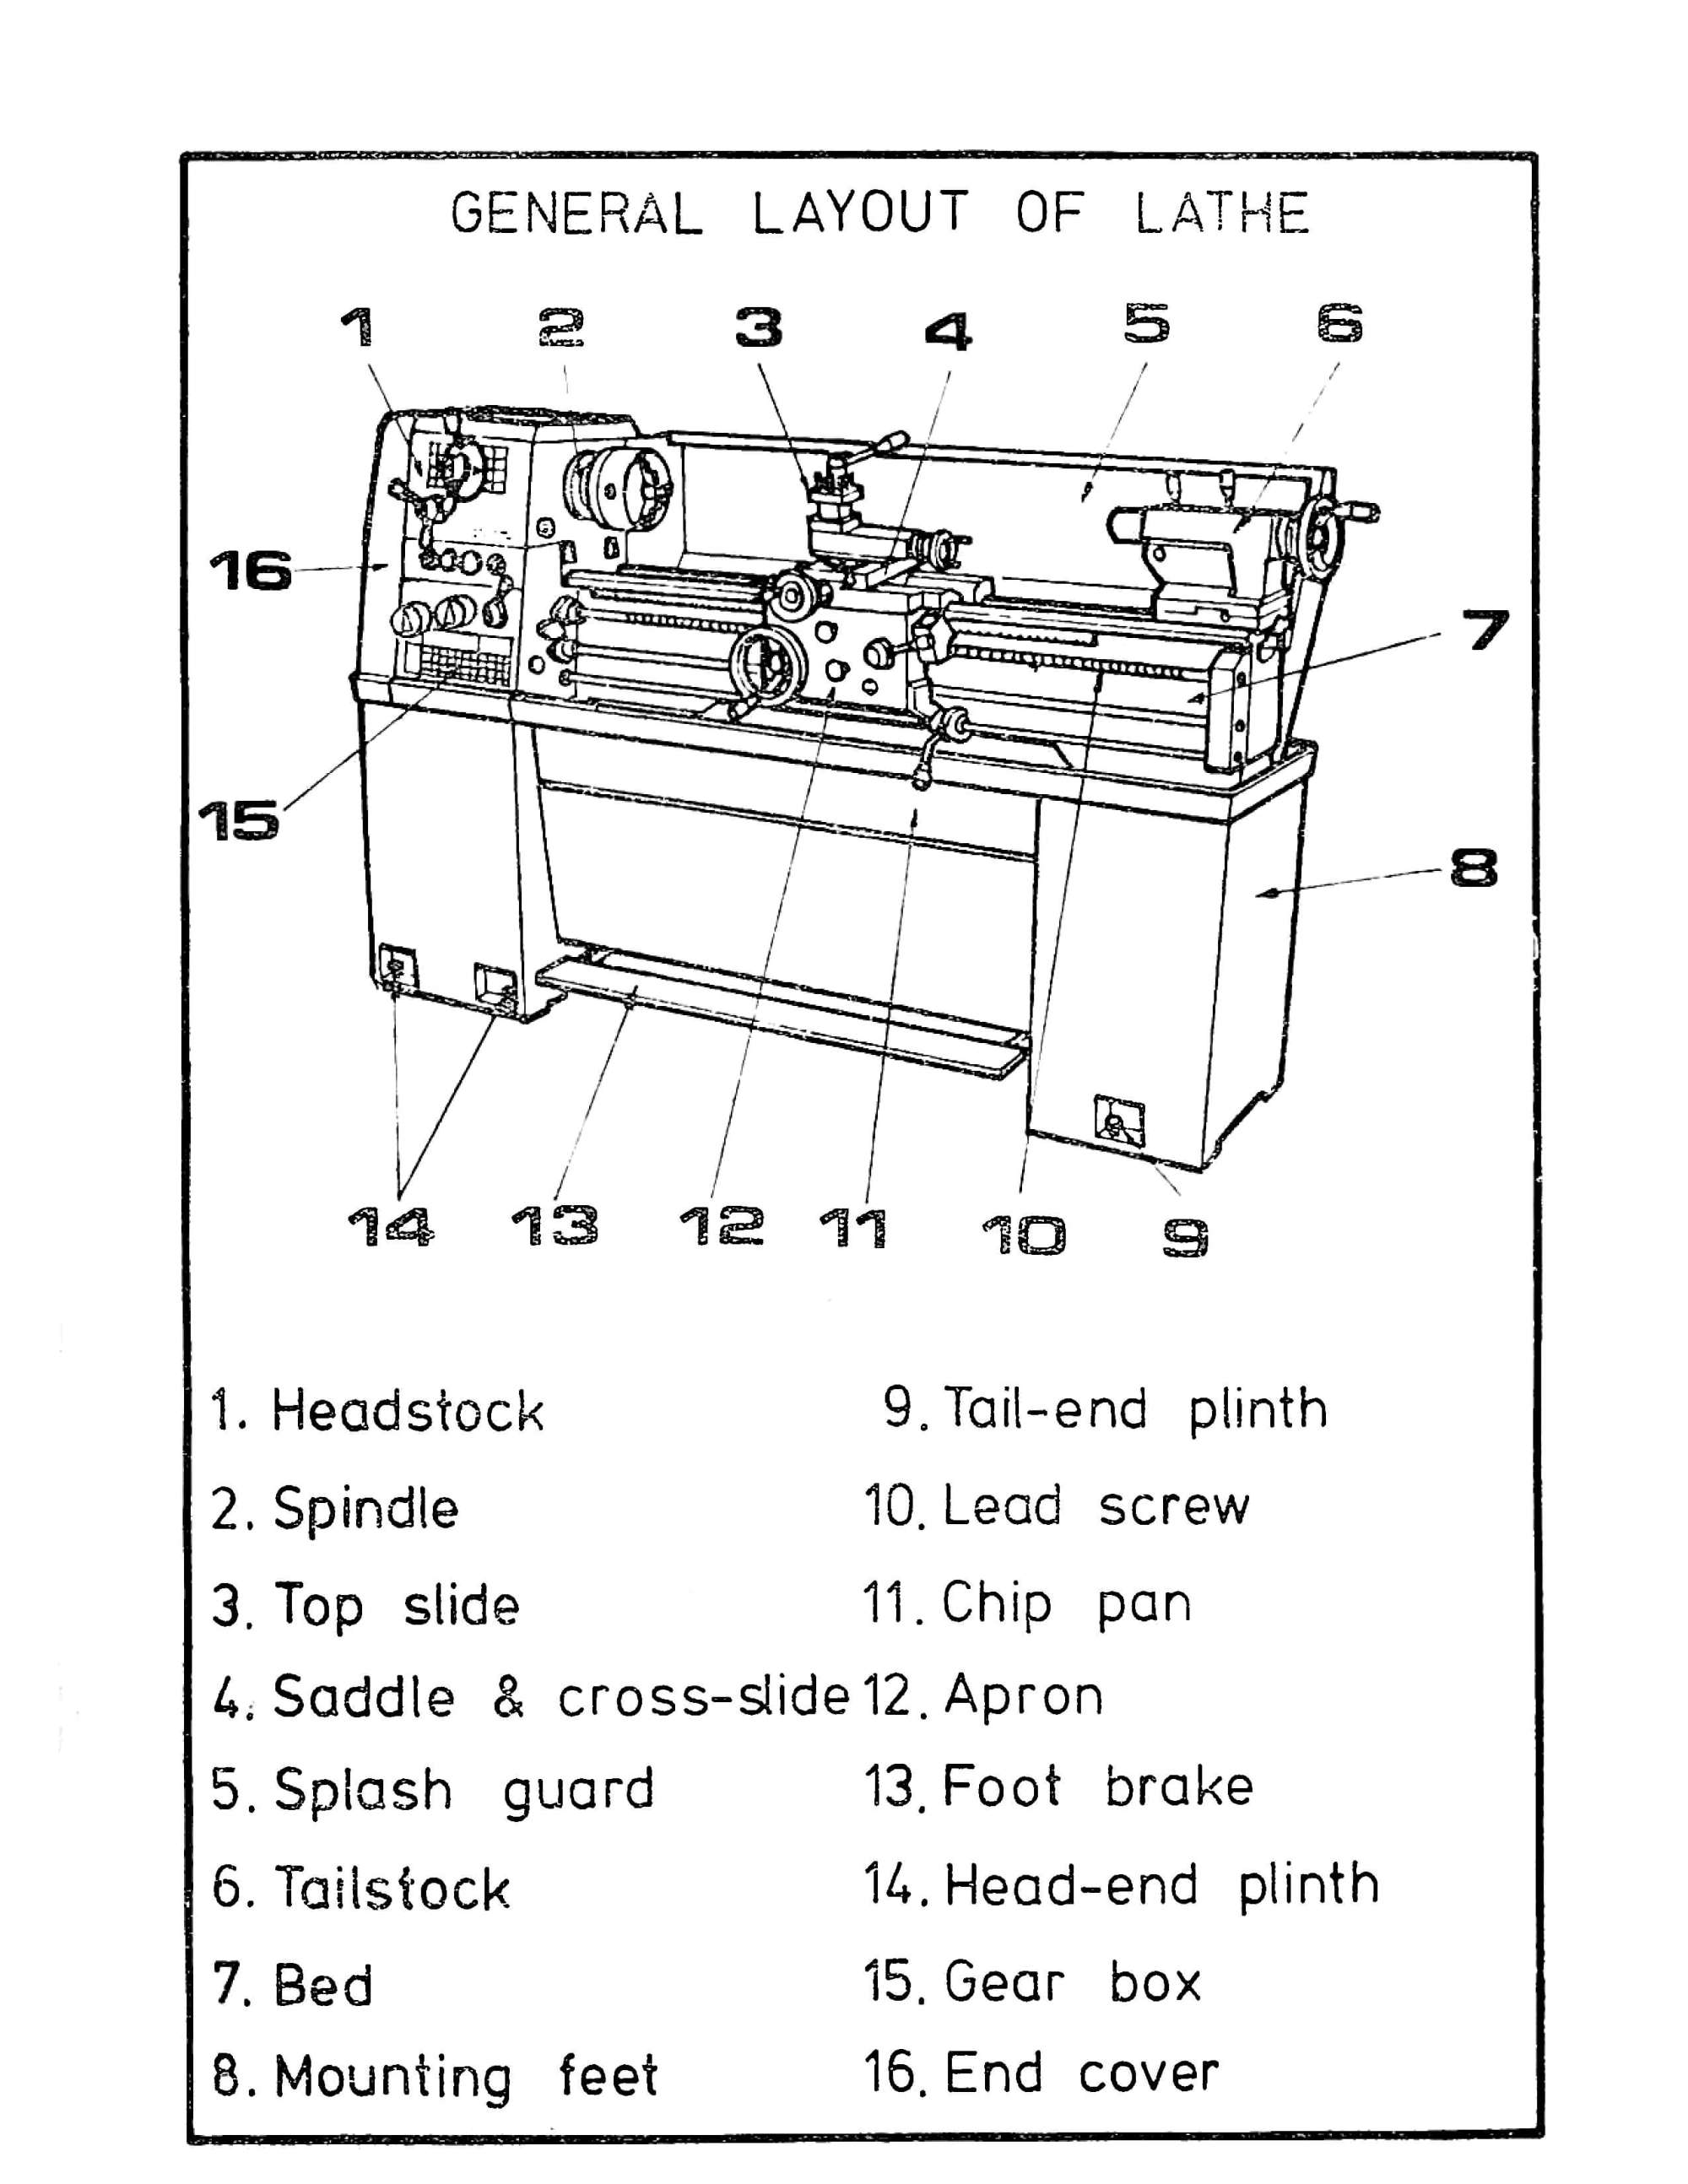 hight resolution of enco lathe wiring diagram 110 1340 wiring diagram expert enco lathe wiring diagram